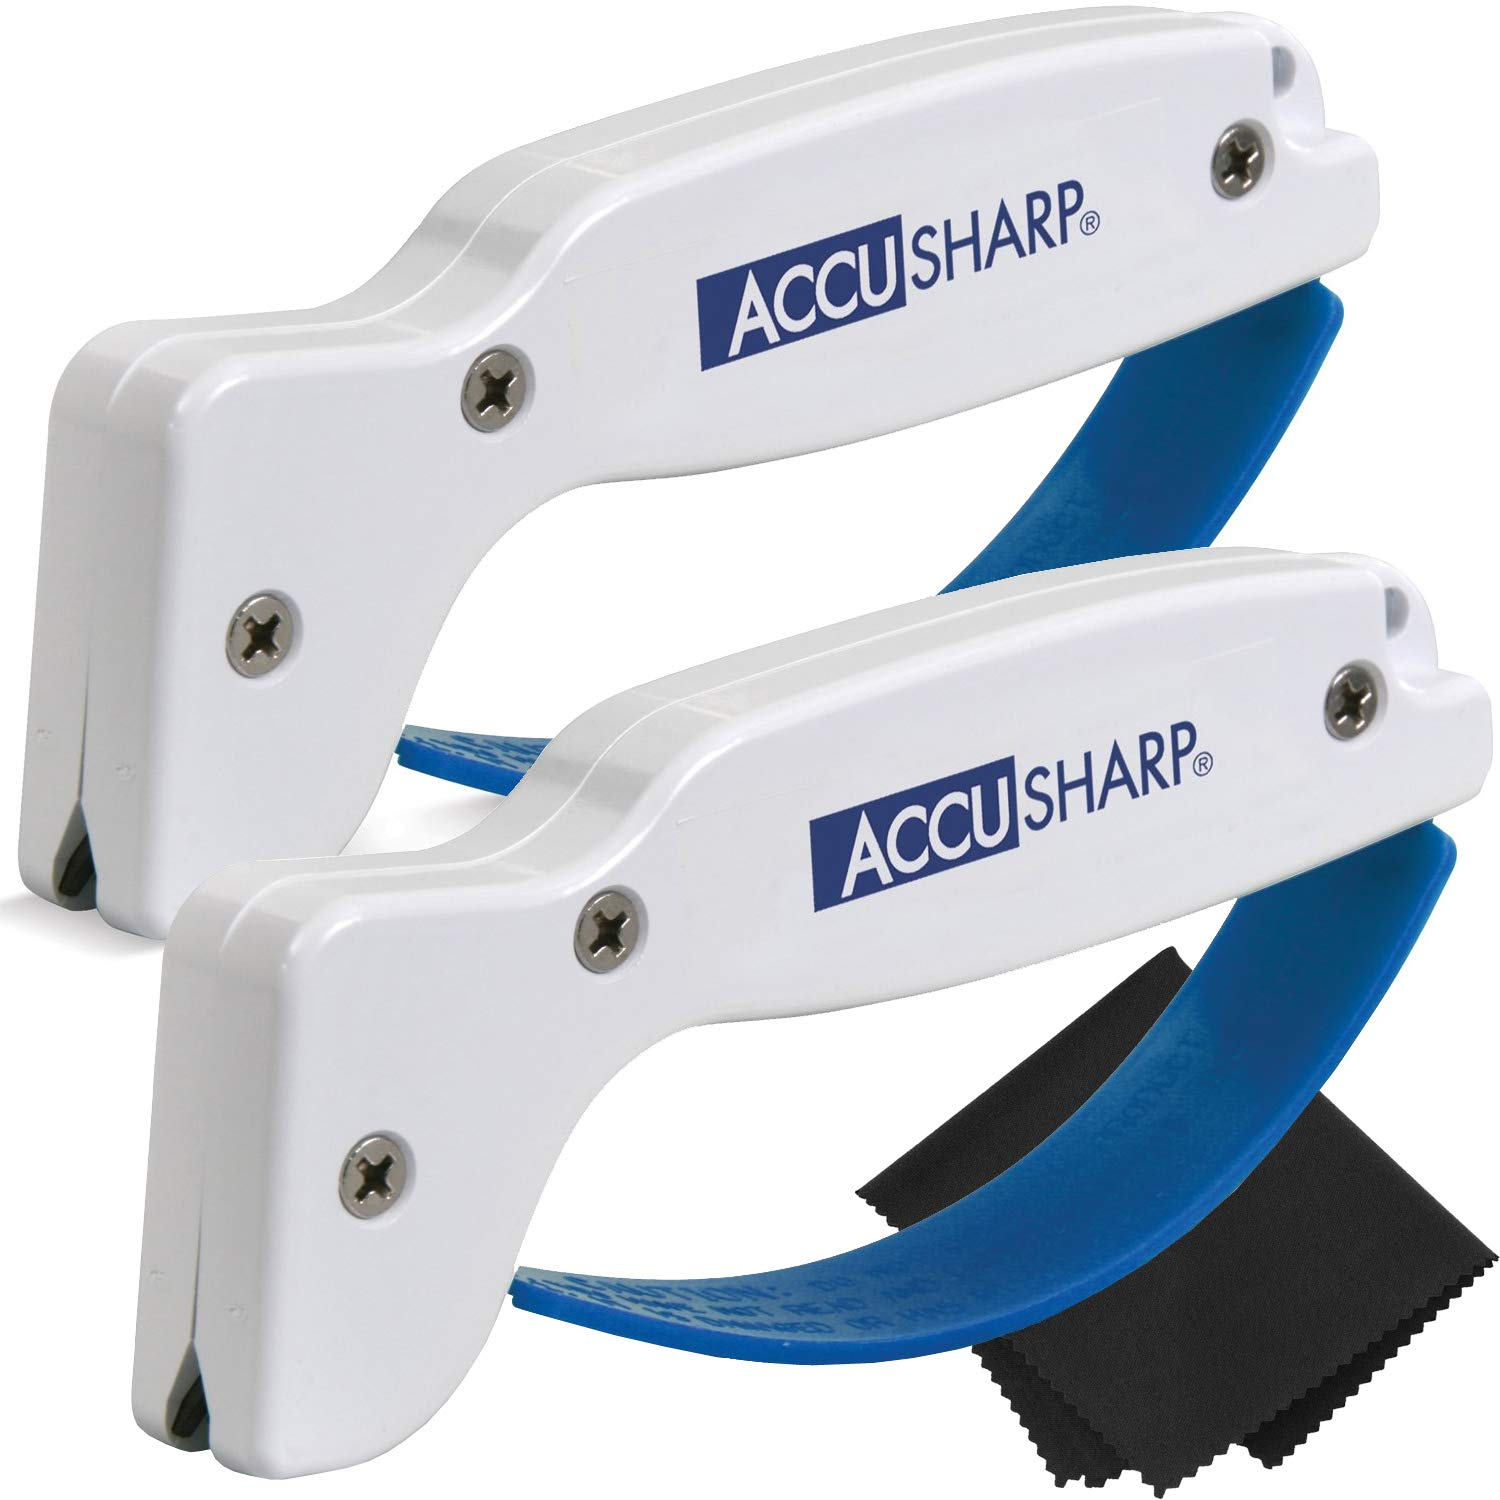 AccuSharp Knife and Tool Sharpener 001 (2-Pack with Z-Cloth) Bundle by AccuSharp